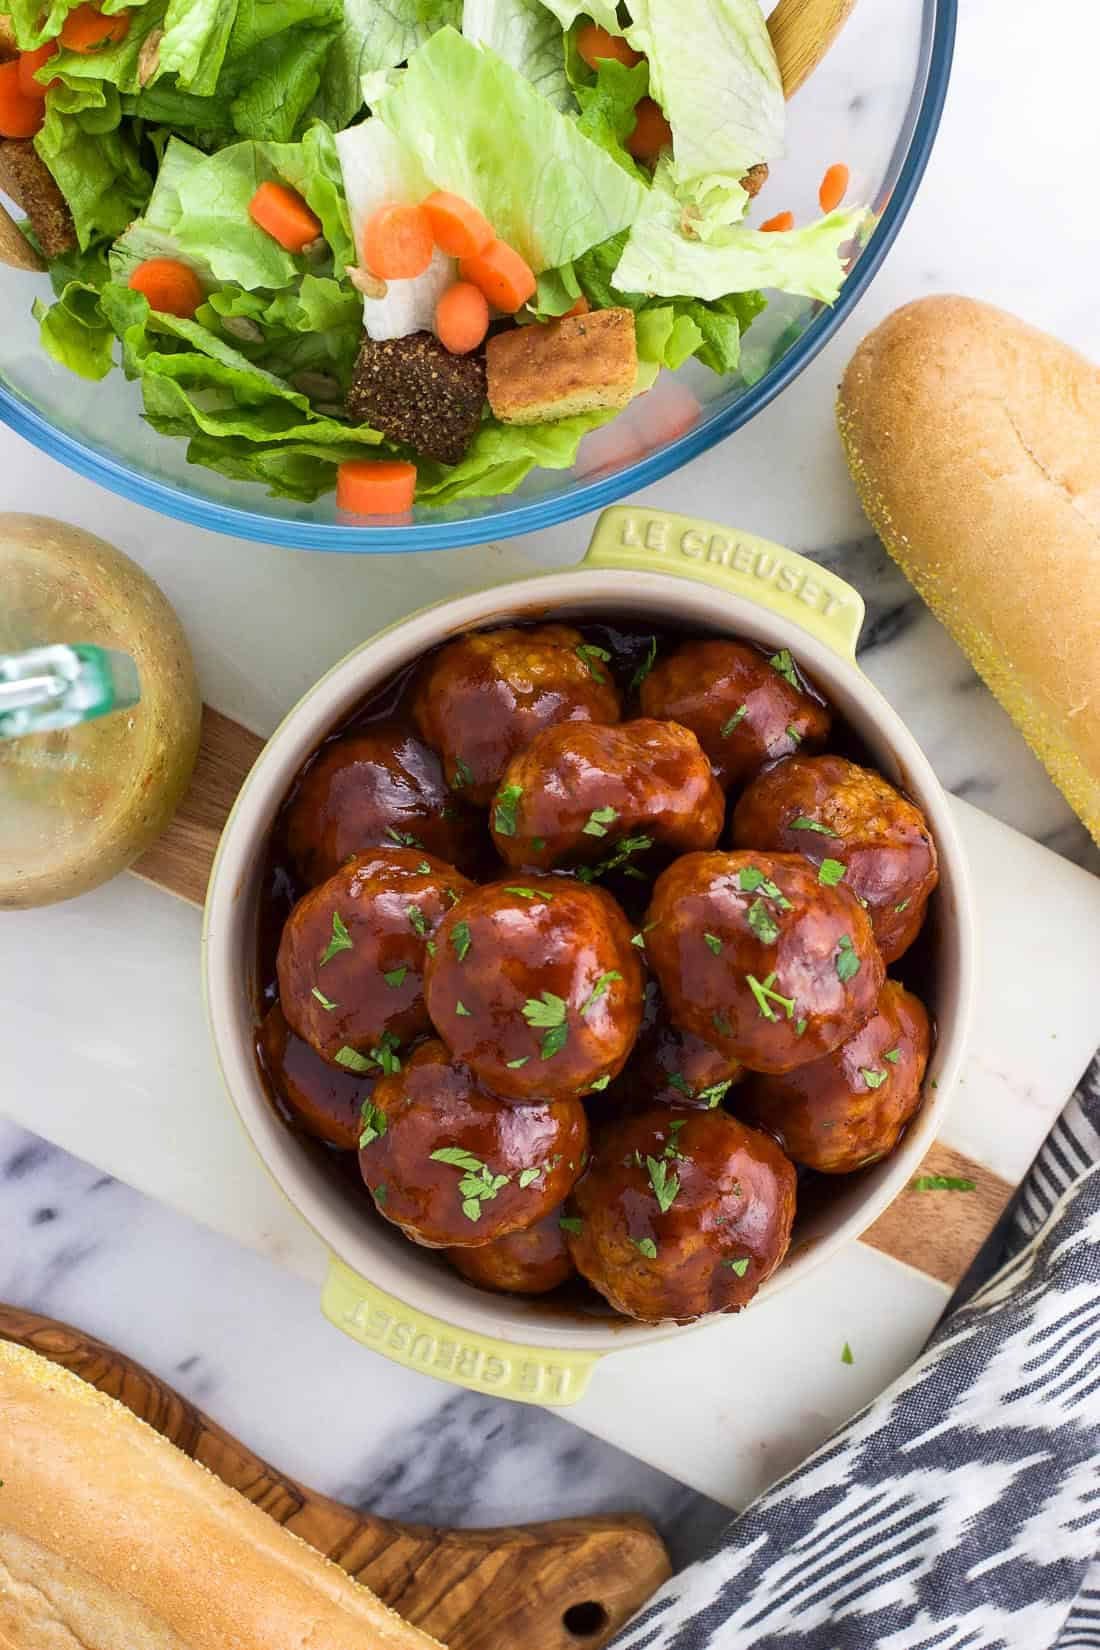 An overhead shot of glazed BBQ chicken meatballs in a bowl next to a bowl of salad and bread rolls